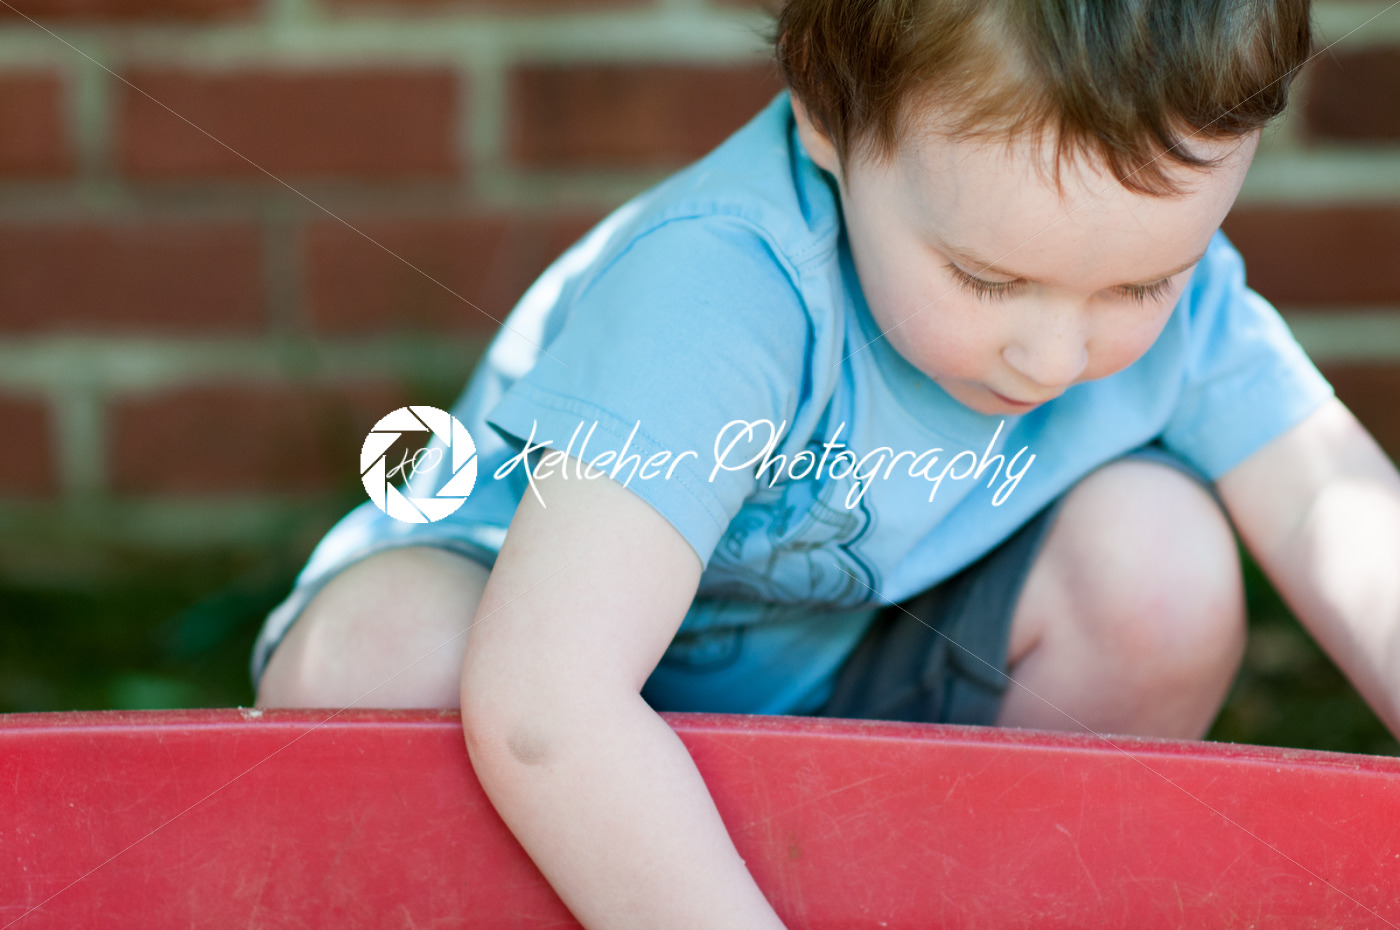 Adorable little boy playing in a sandbox - Kelleher Photography Store